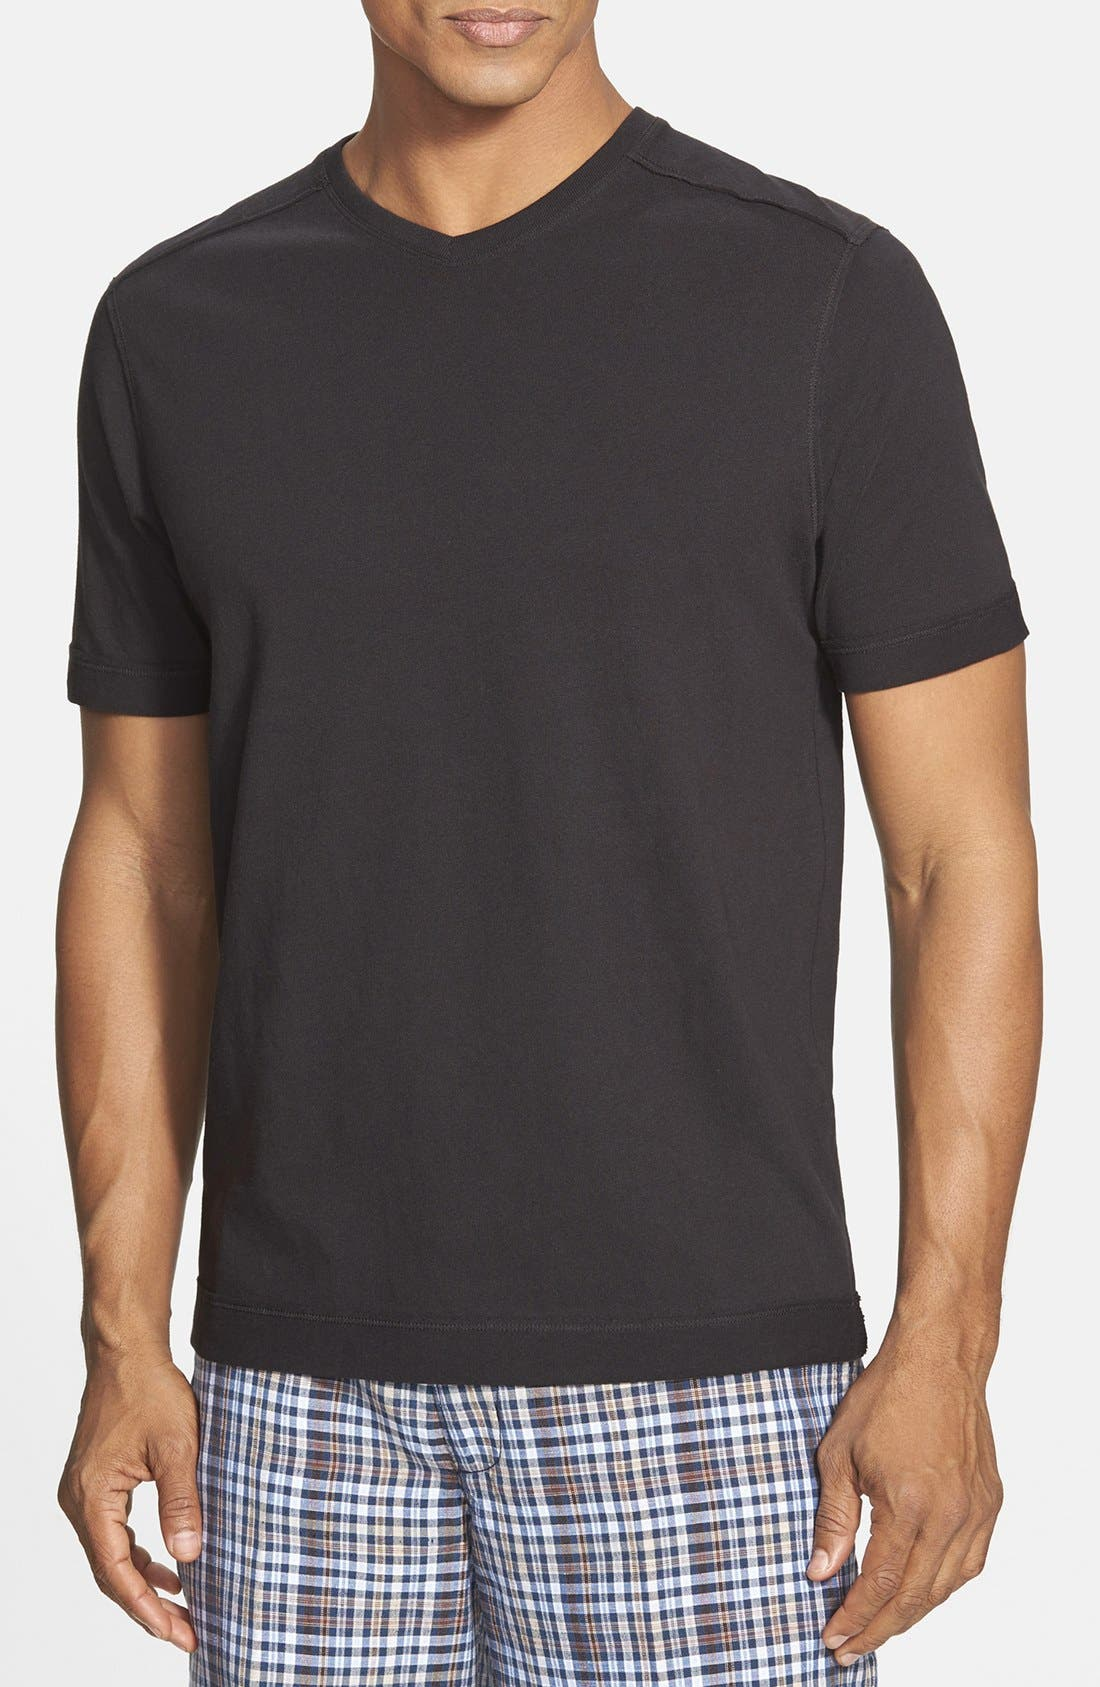 Alternate Image 1 Selected - Tommy Bahama Denim 'Cohen' Island Modern Fit T-Shirt